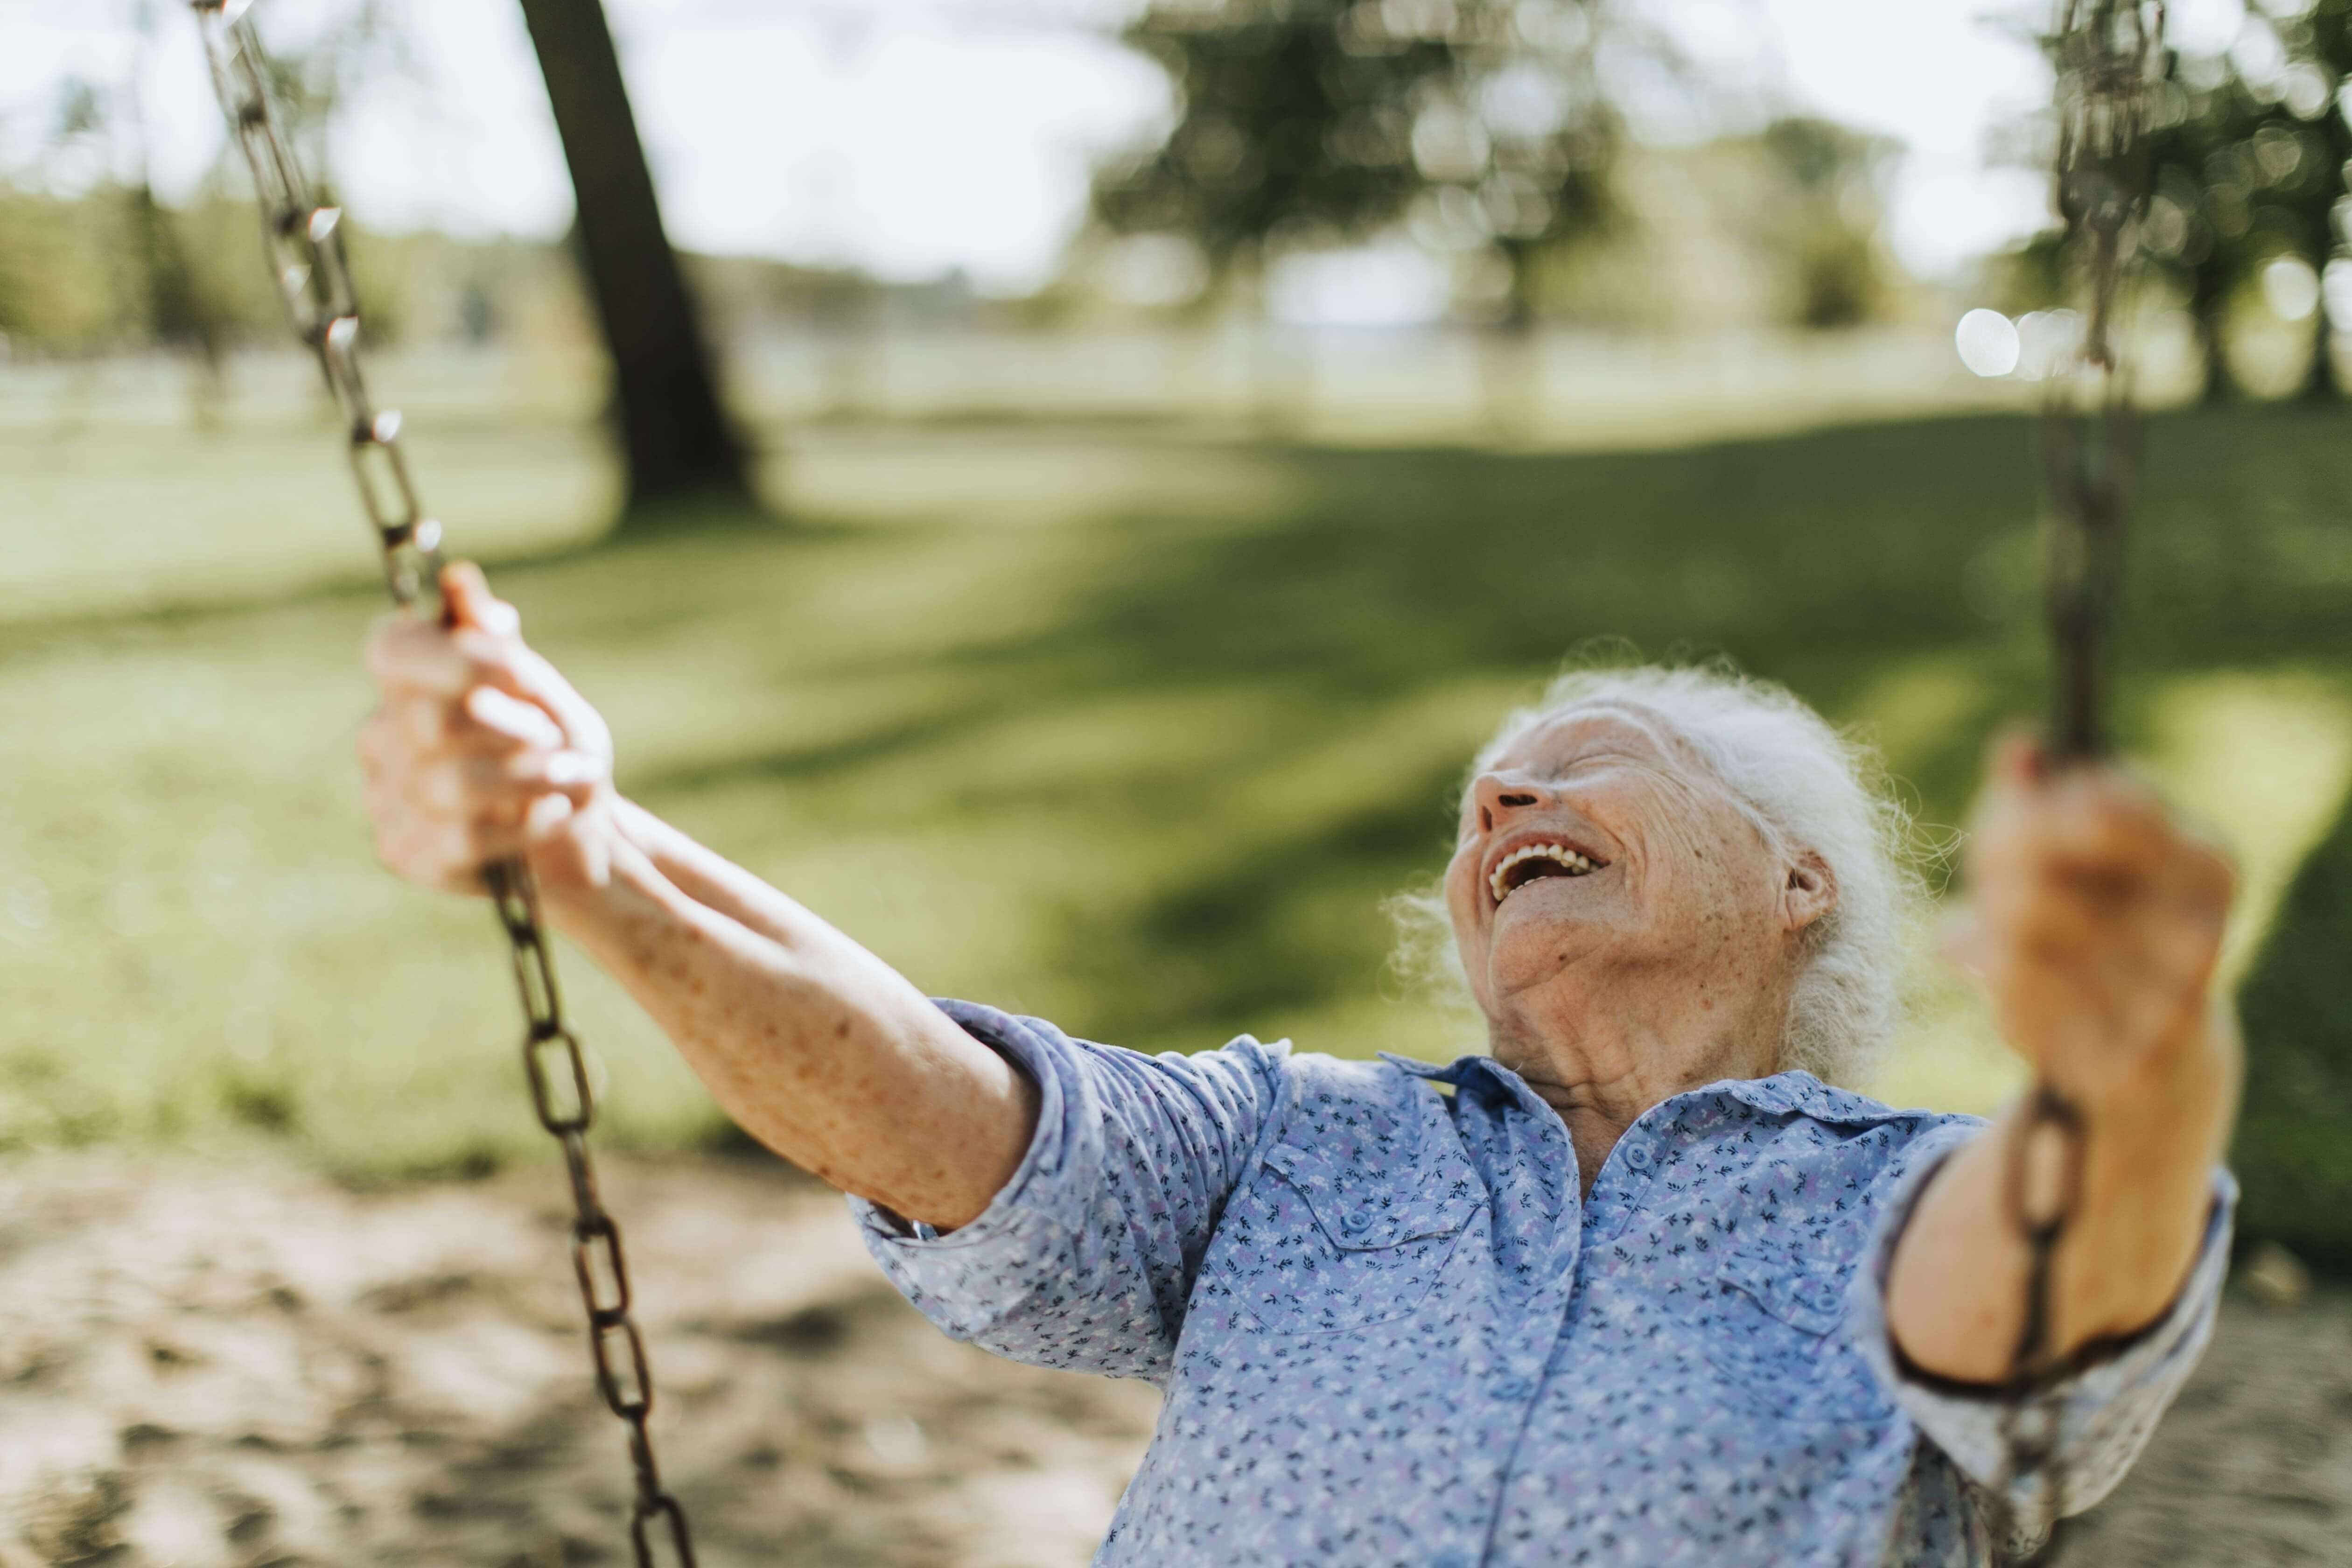 Older woman playing on a swing and laughing